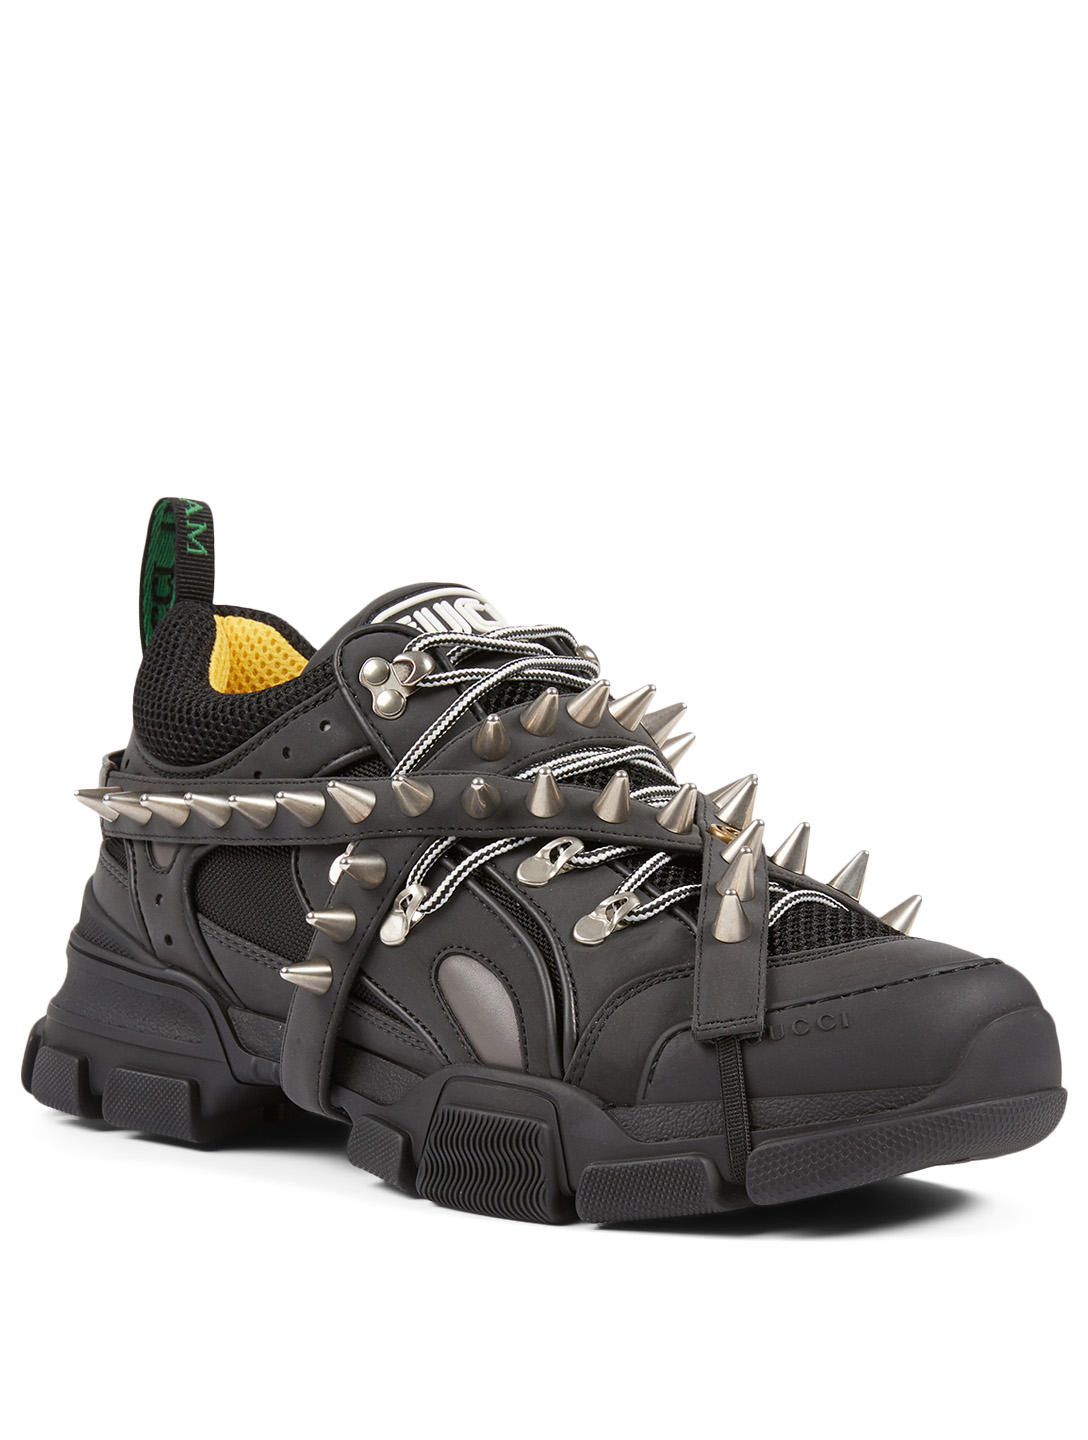 GUCCI Flashtrek Reflective And Technical Canvas Sneakers With Removable Spikes Men's Black